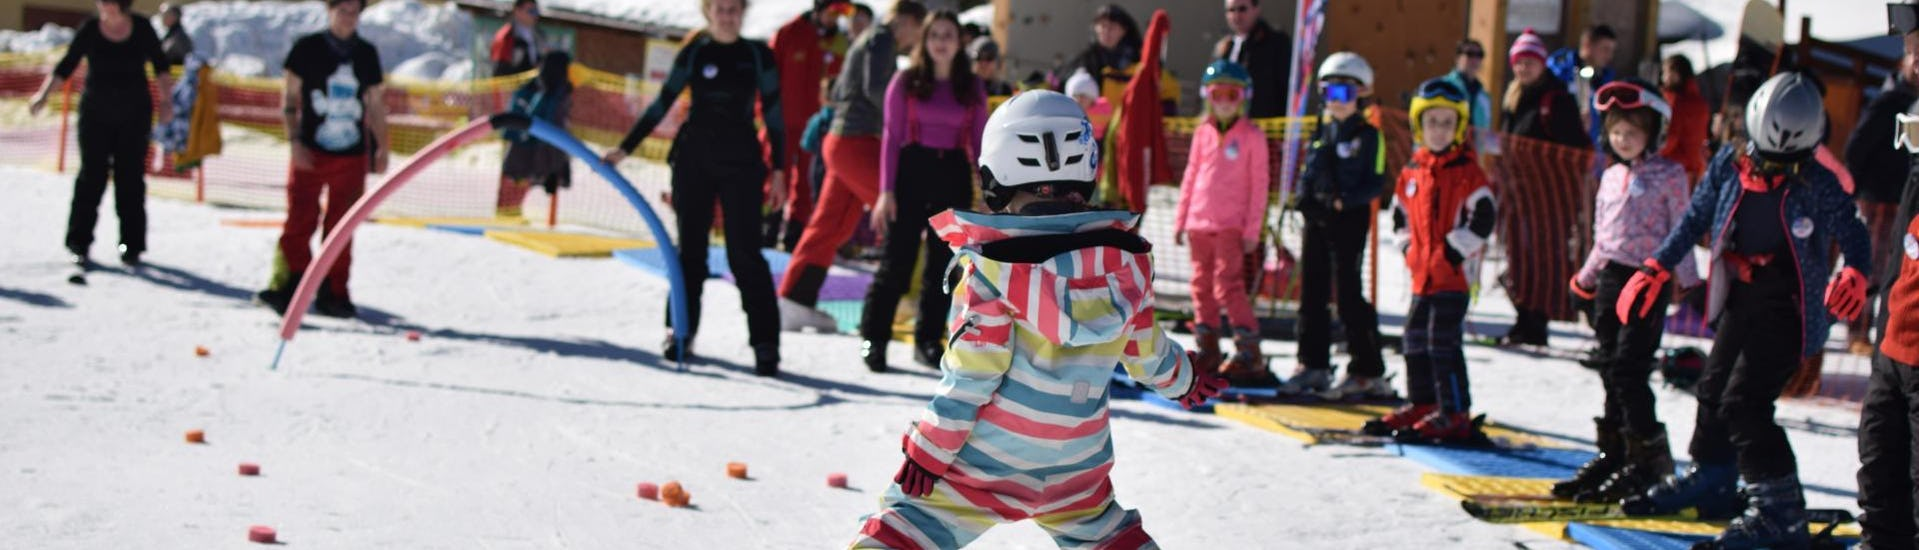 ski-lessons-for-kids---small-group---all-levels-hero